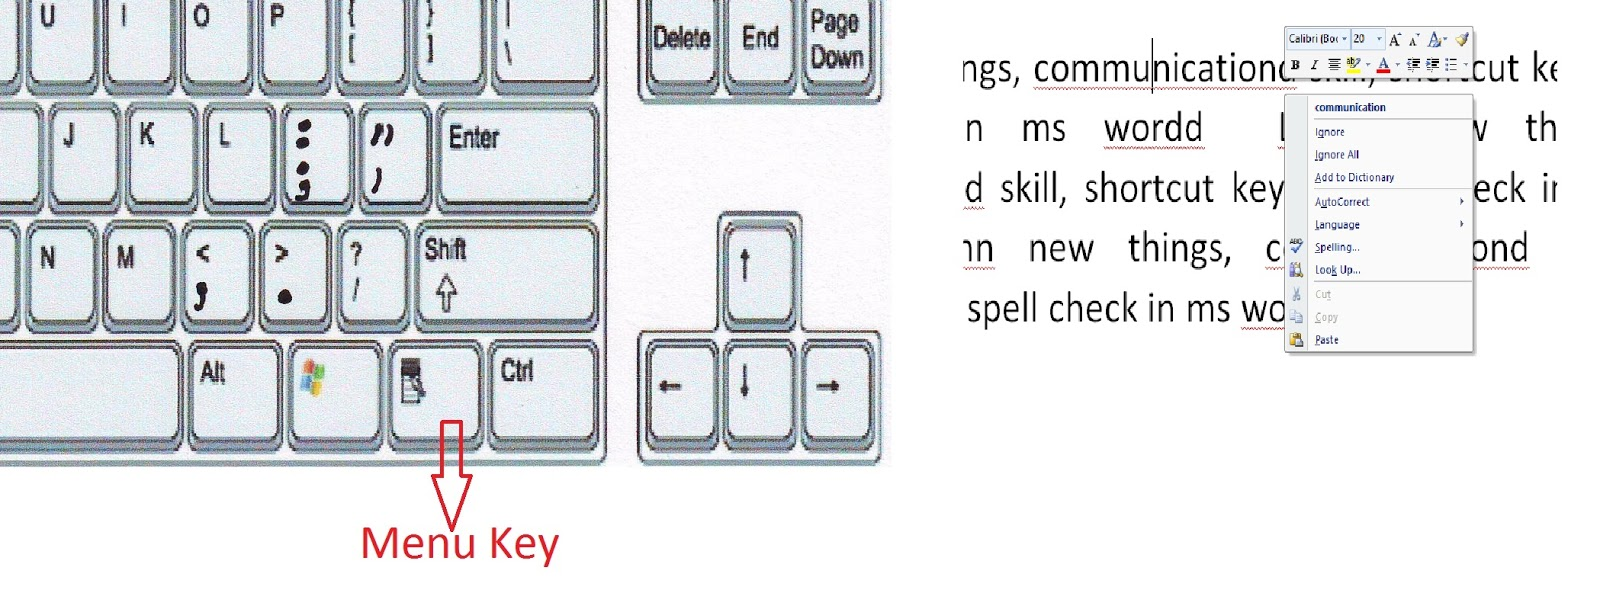 Shortcut Key To Spell Check In Ms Word,spell Checker (software),how